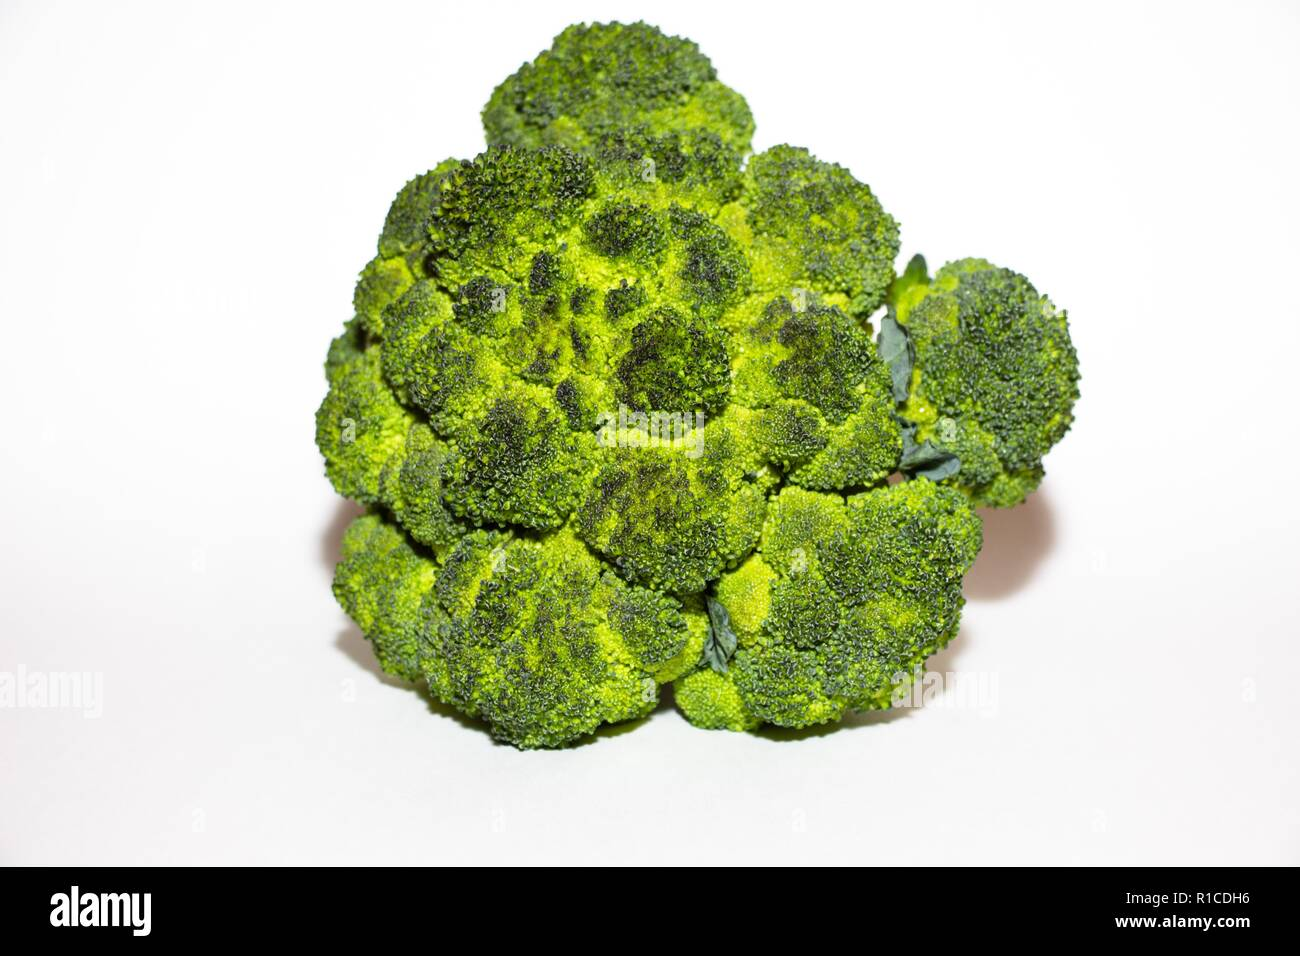 Fresh broccoli cabbage lies on a white background. It is only picked from the garden and ready for use. It is a healthy vegetable and rich in vitamins - Stock Image